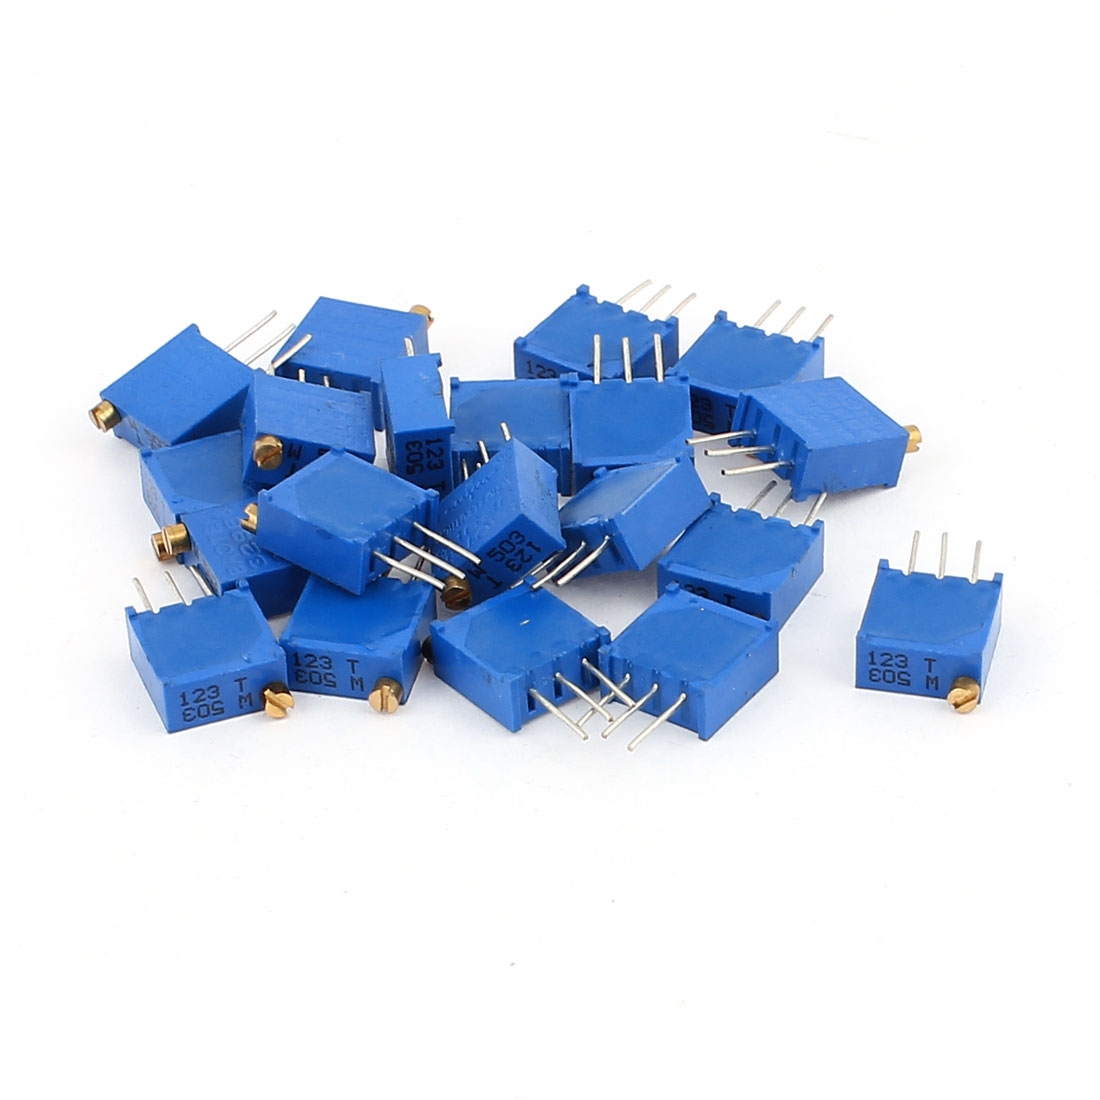 20 Pcs 3296W 50K ohm Multiturn Potentiometer Pot Variable Resistor